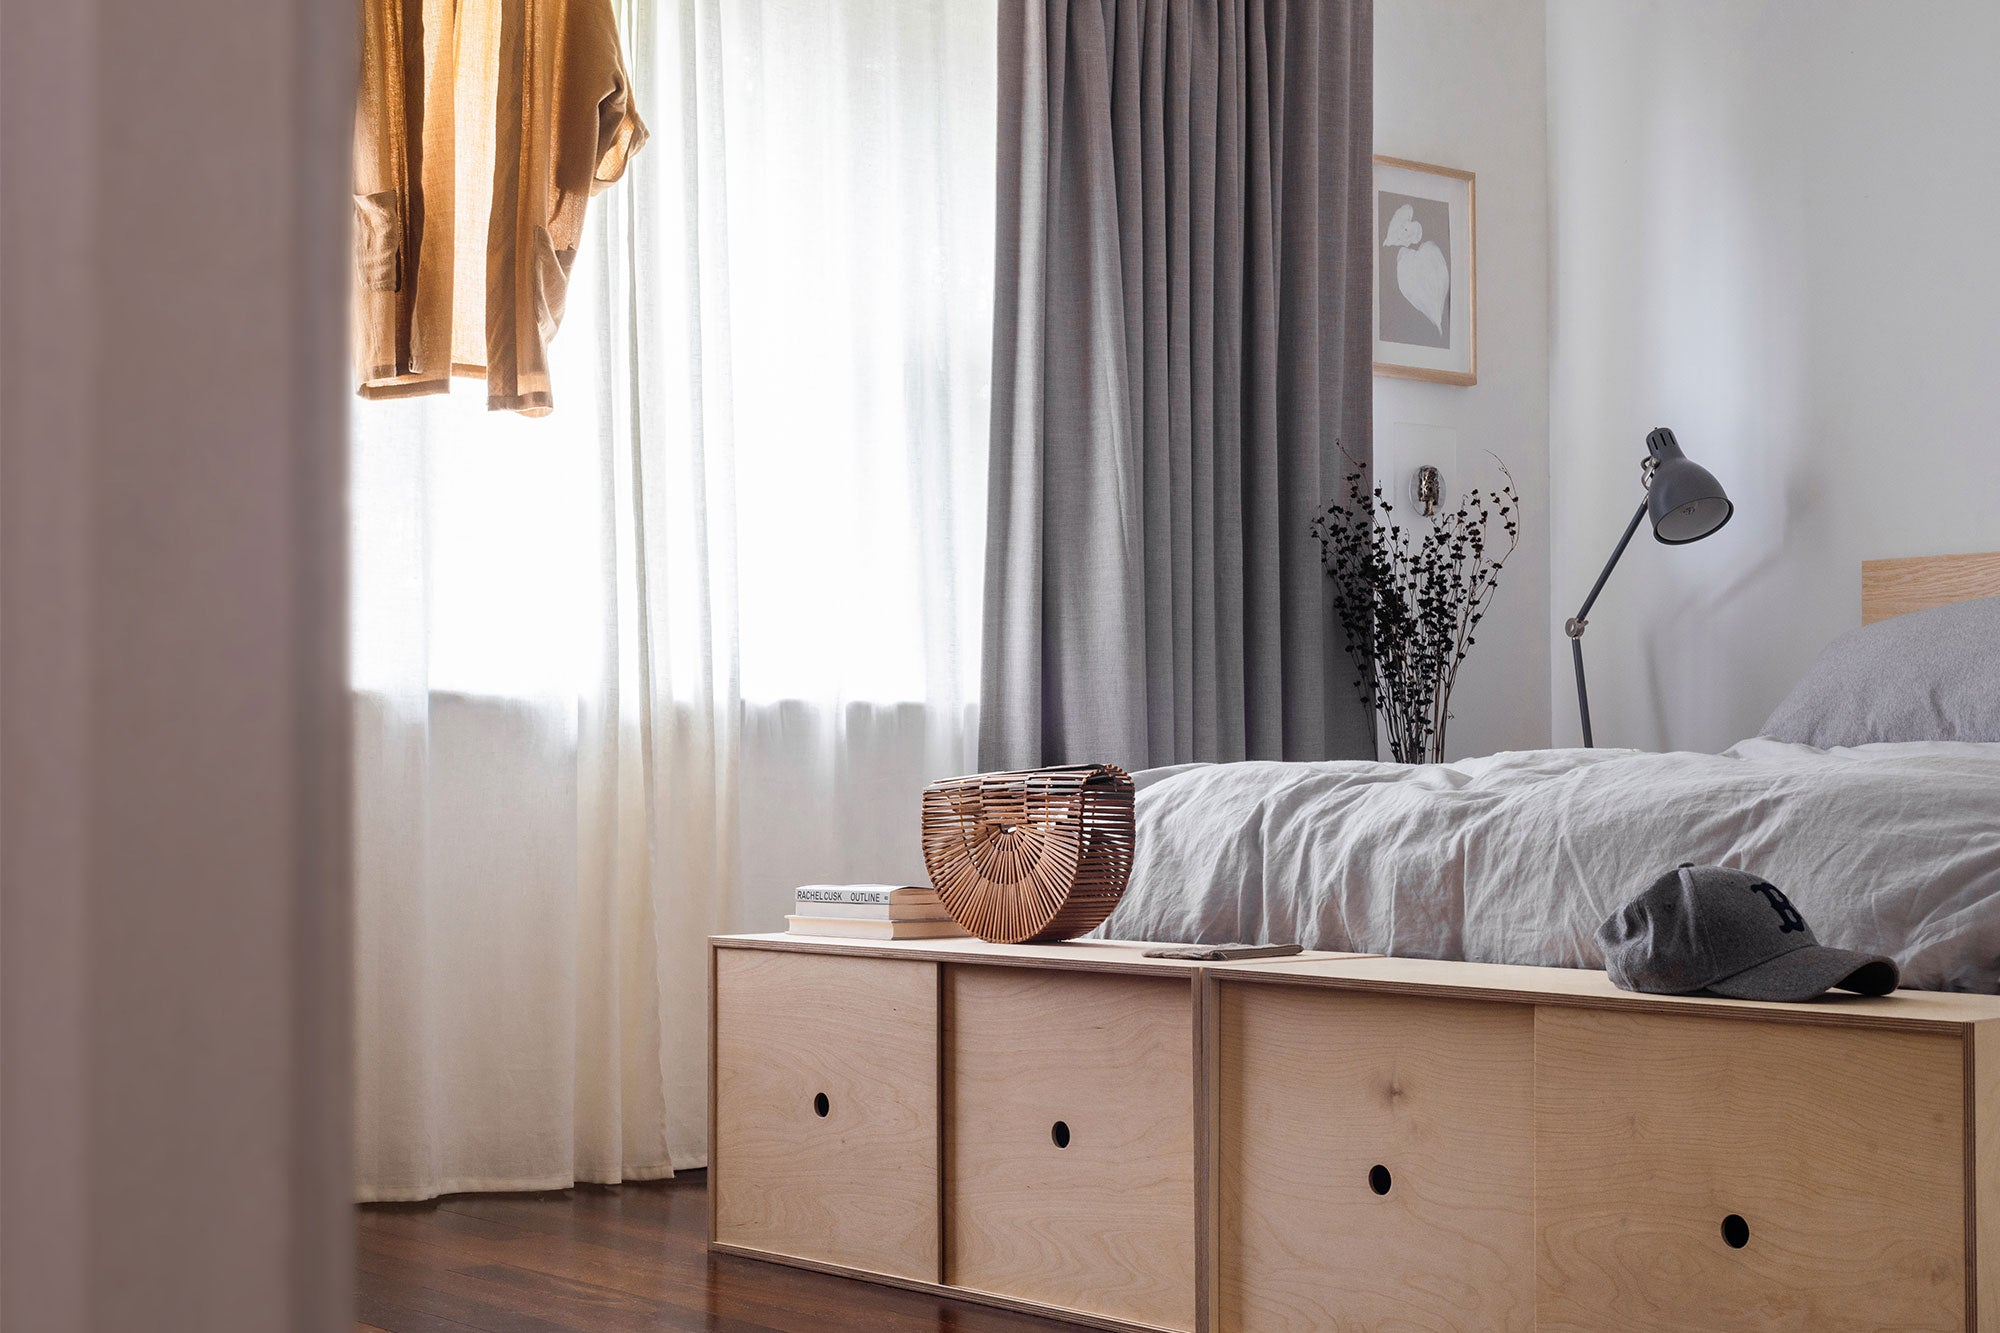 Plyroom Big Nest Meghan Plowman Bedroom Storage